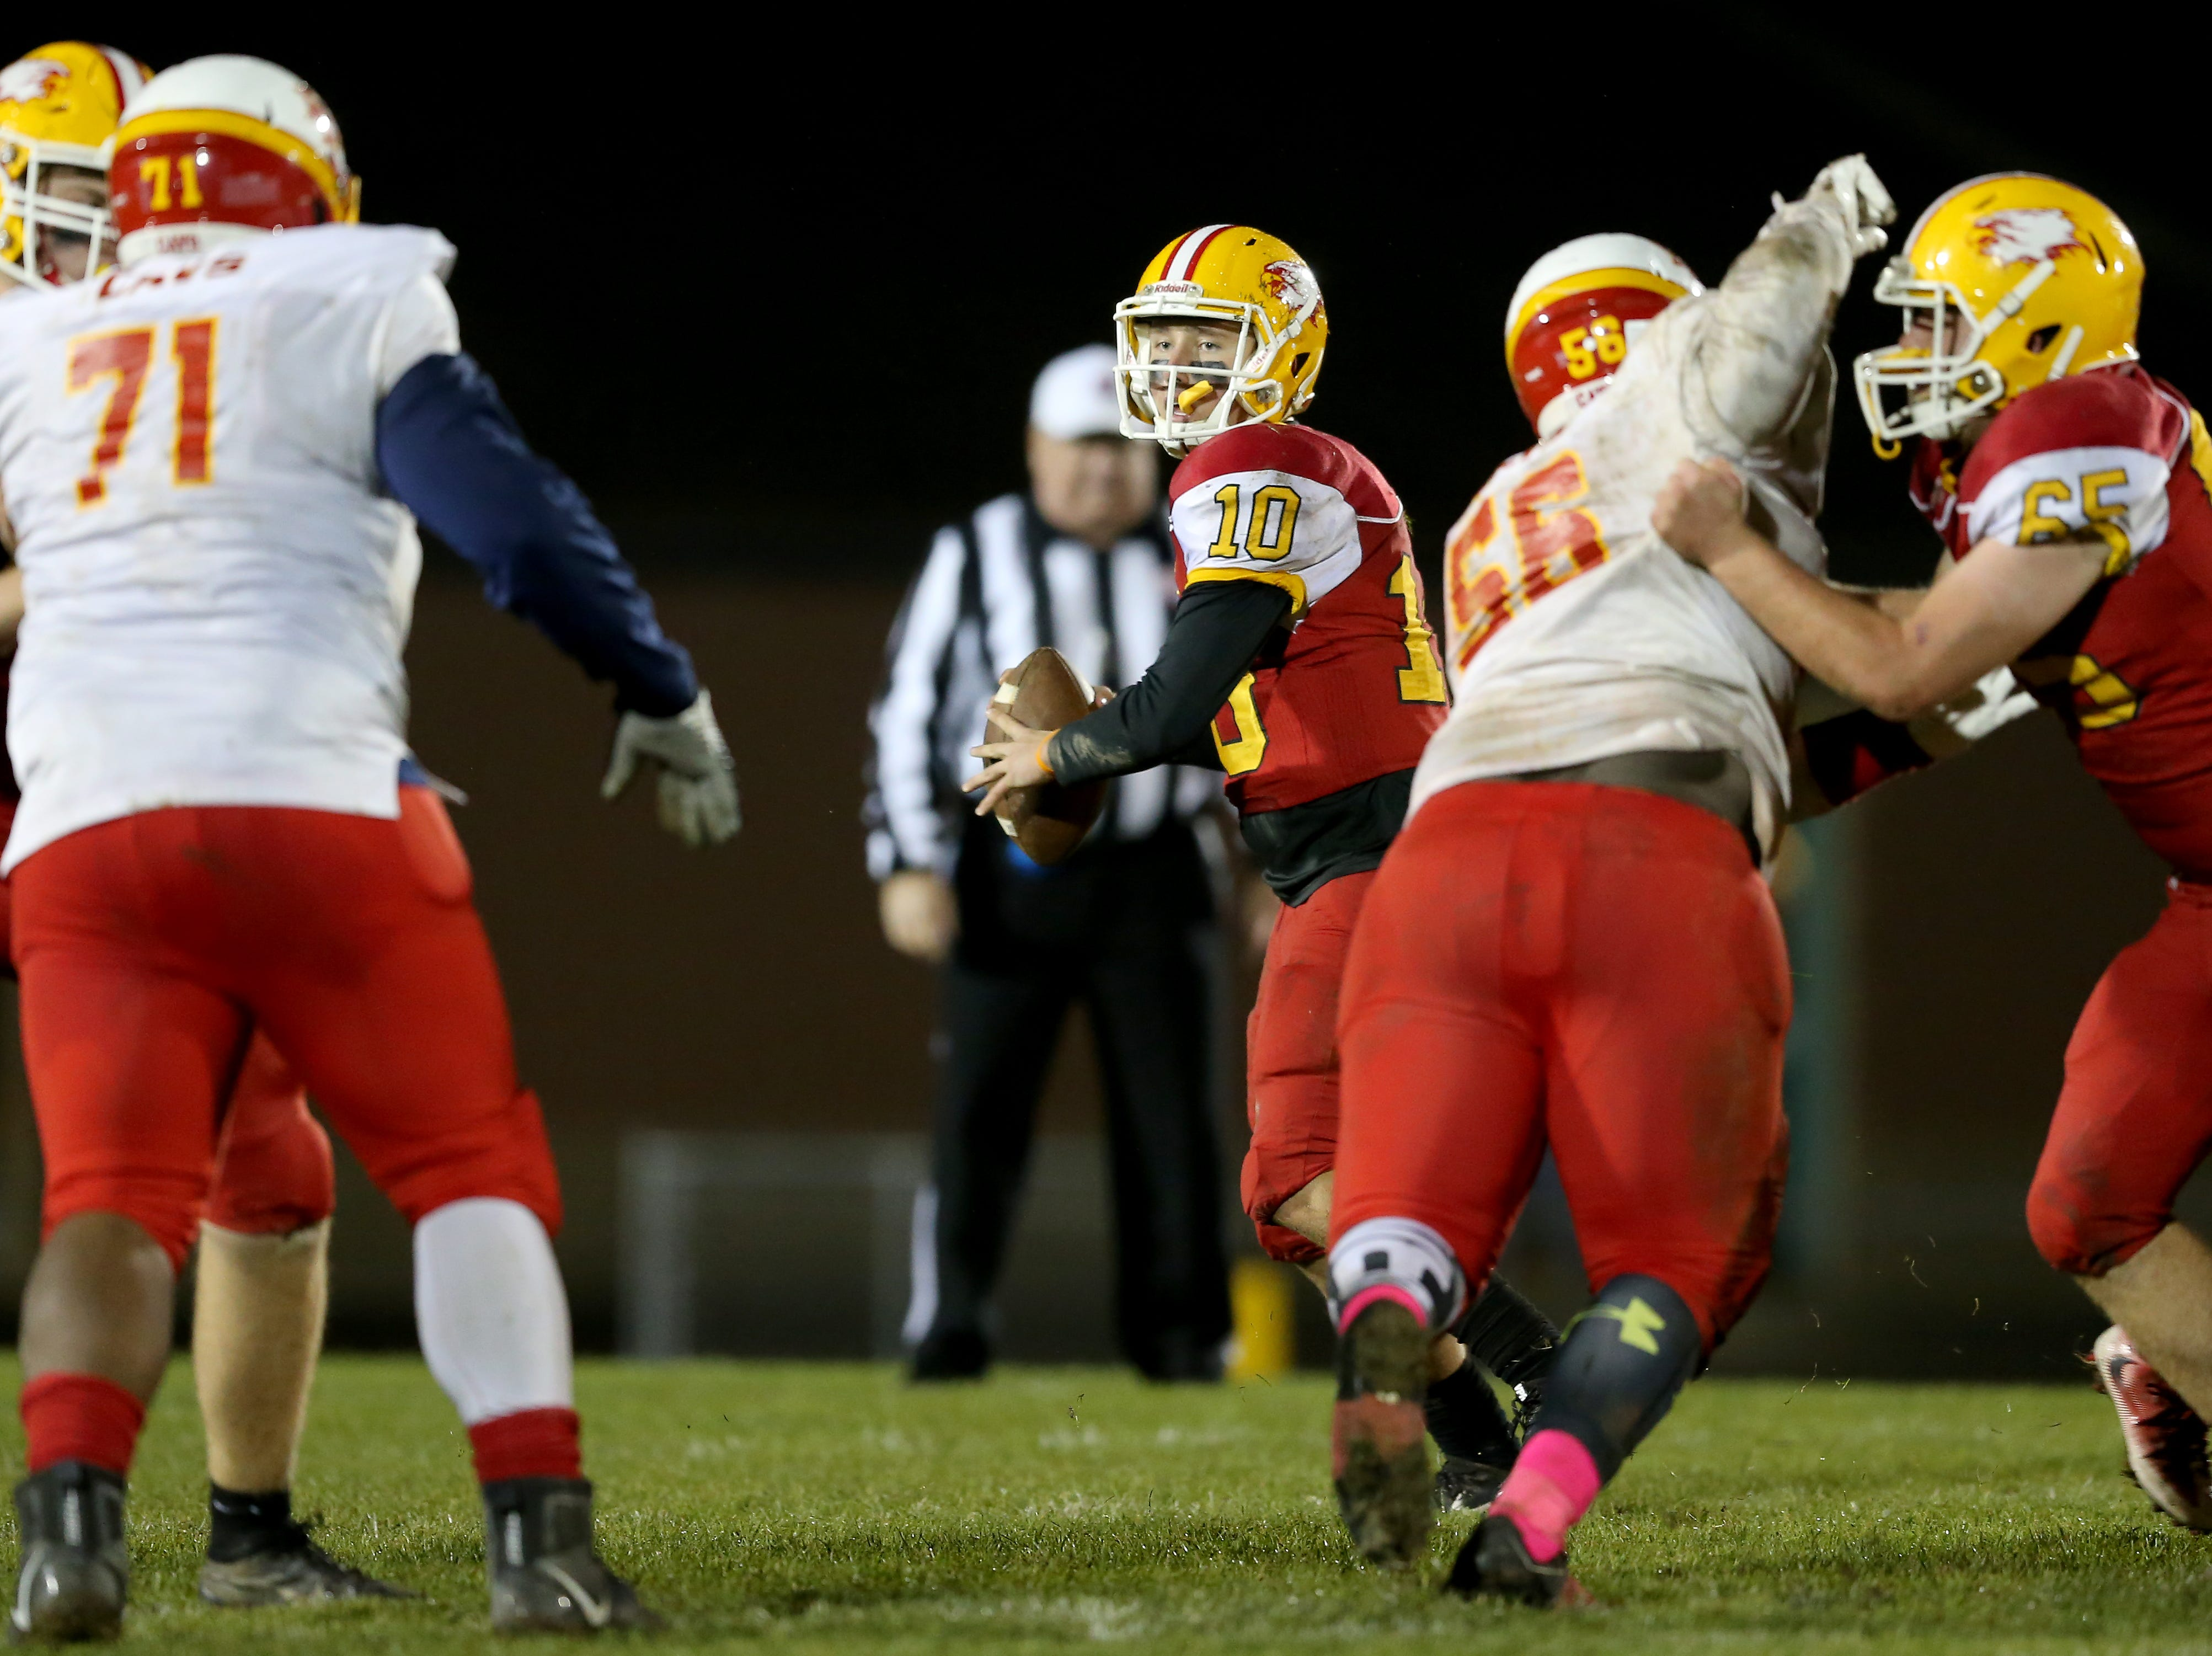 Bishop Fenwick quarterback Sully Janeck (10) drops back to pass in the fourth quarter during a high school football game between Purcell Marian and Bishop Fenwick, Friday, Oct. 12, 2018, at Bishop Fenwick High School in Middletown, Ohio.